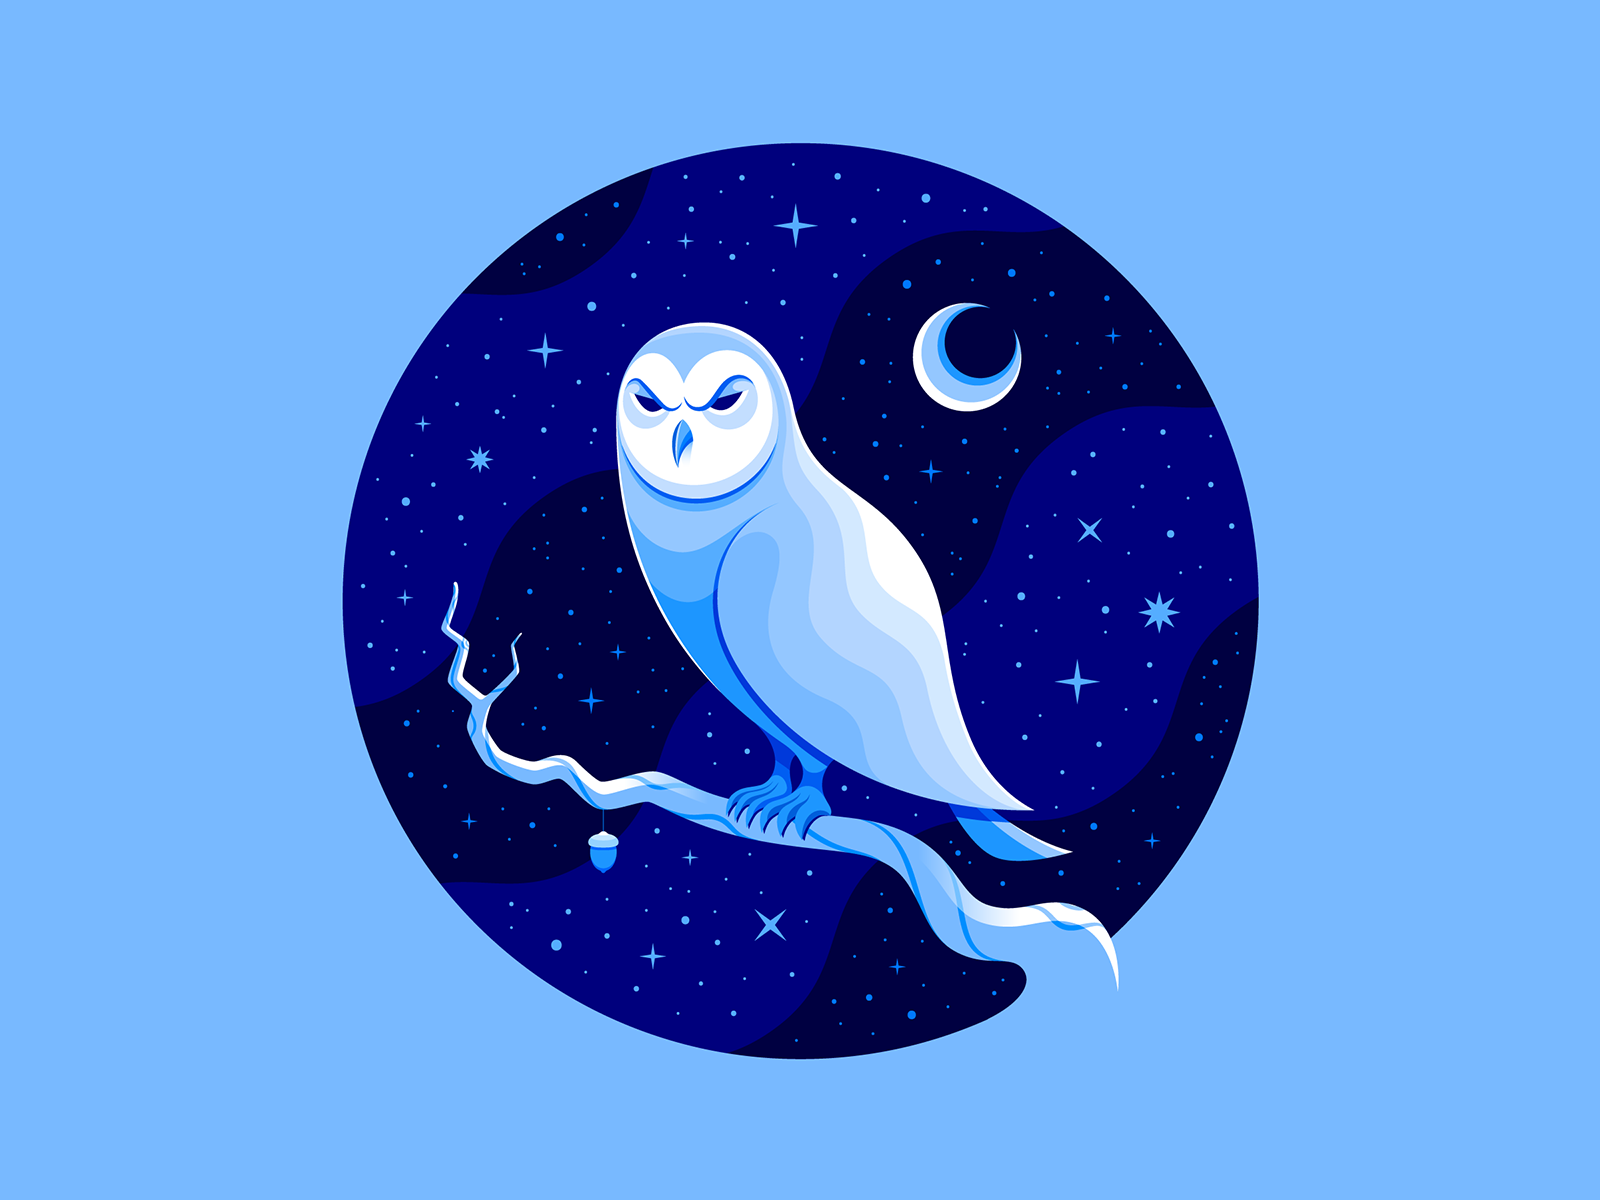 5 Striking Color Trends You Ll Want To Hop On In 2020 Web Design Ledger In 2020 Owl Illustration Color Trends Snowy Owl